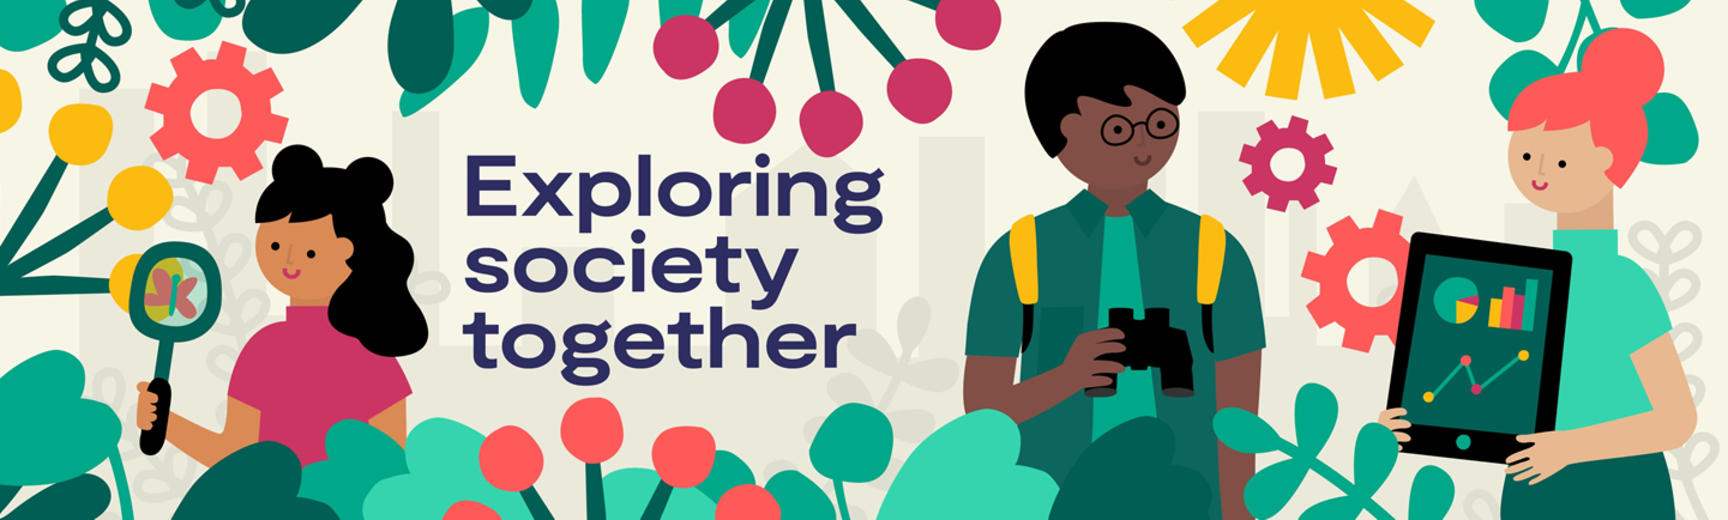 A graphic illustration show three people of diverse ethnicities exploring a natural environment and looking at data together